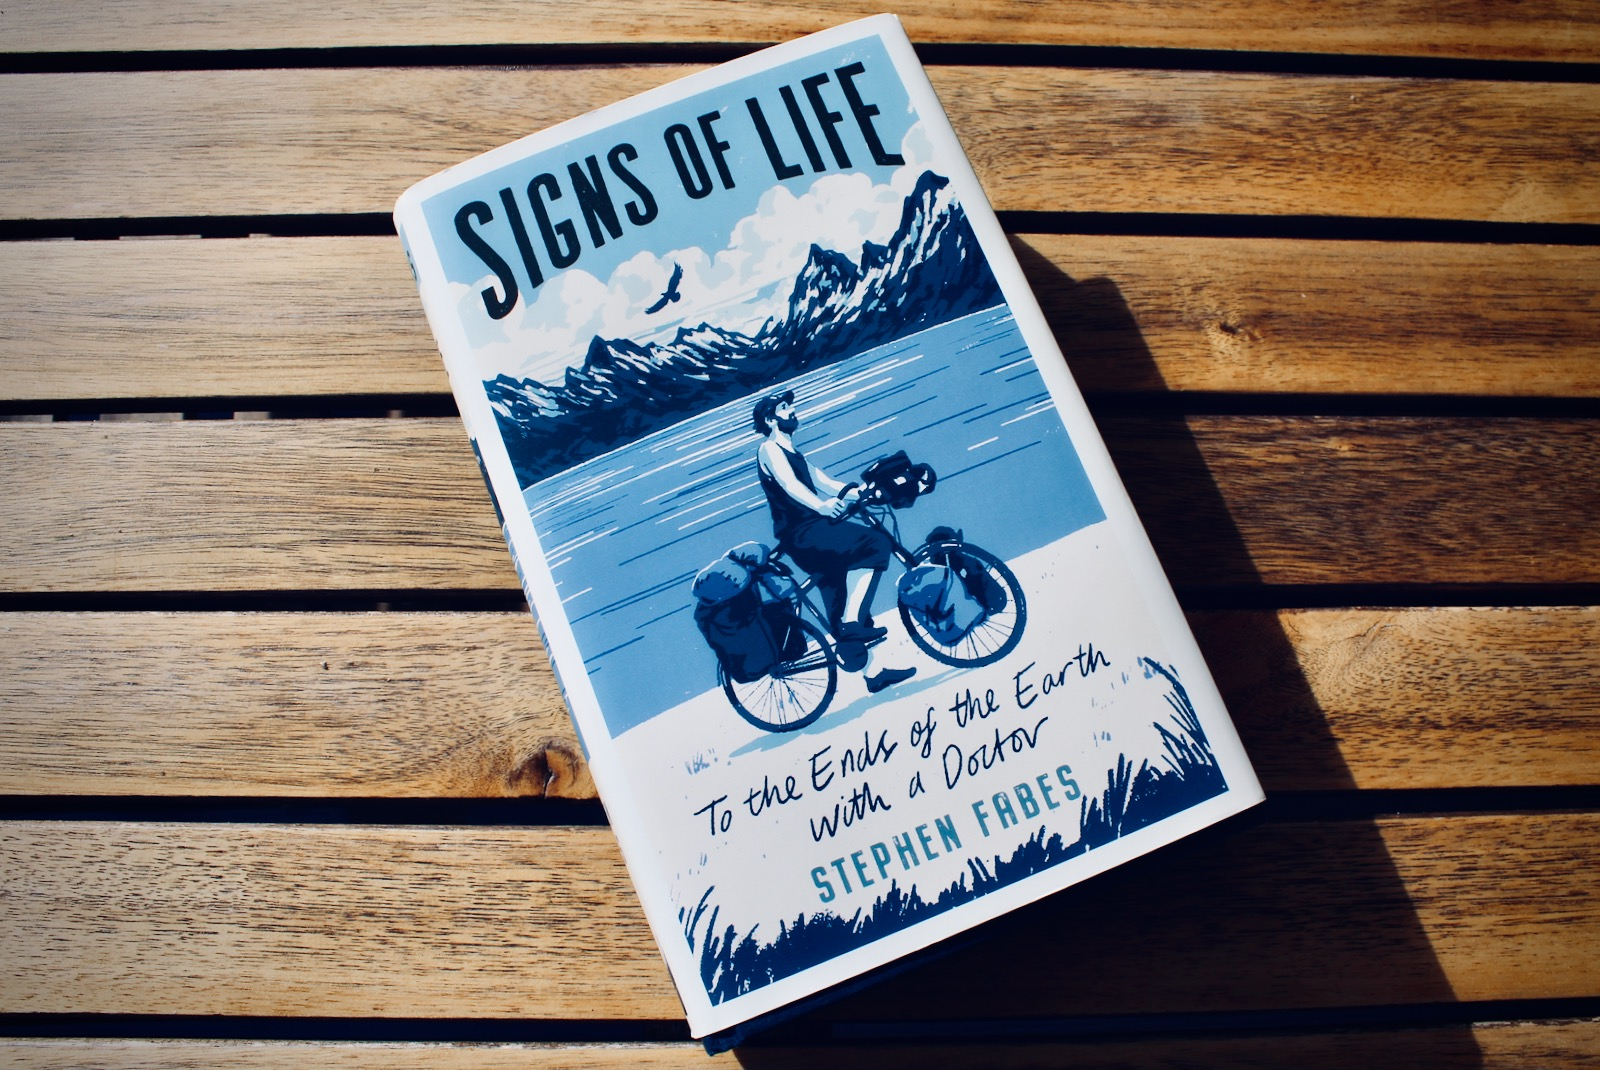 Signs of Life: A Doctor's Journey to the Ends of the Earth by Stephen Fabes